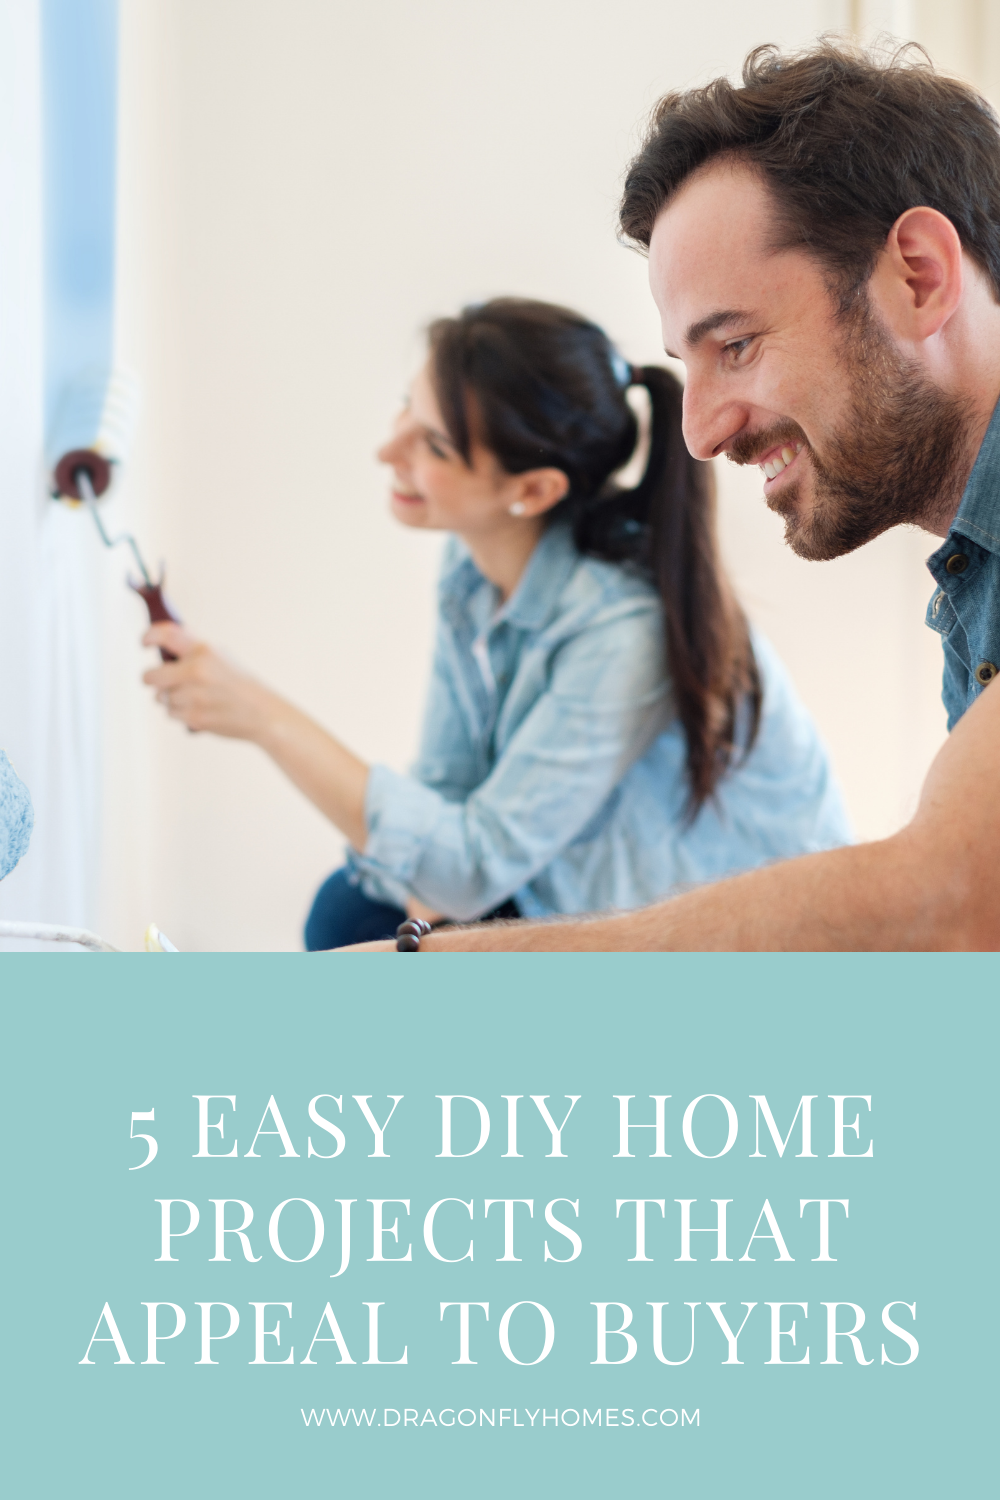 5 Easy DIY Home Projects that Appeal to Buyers